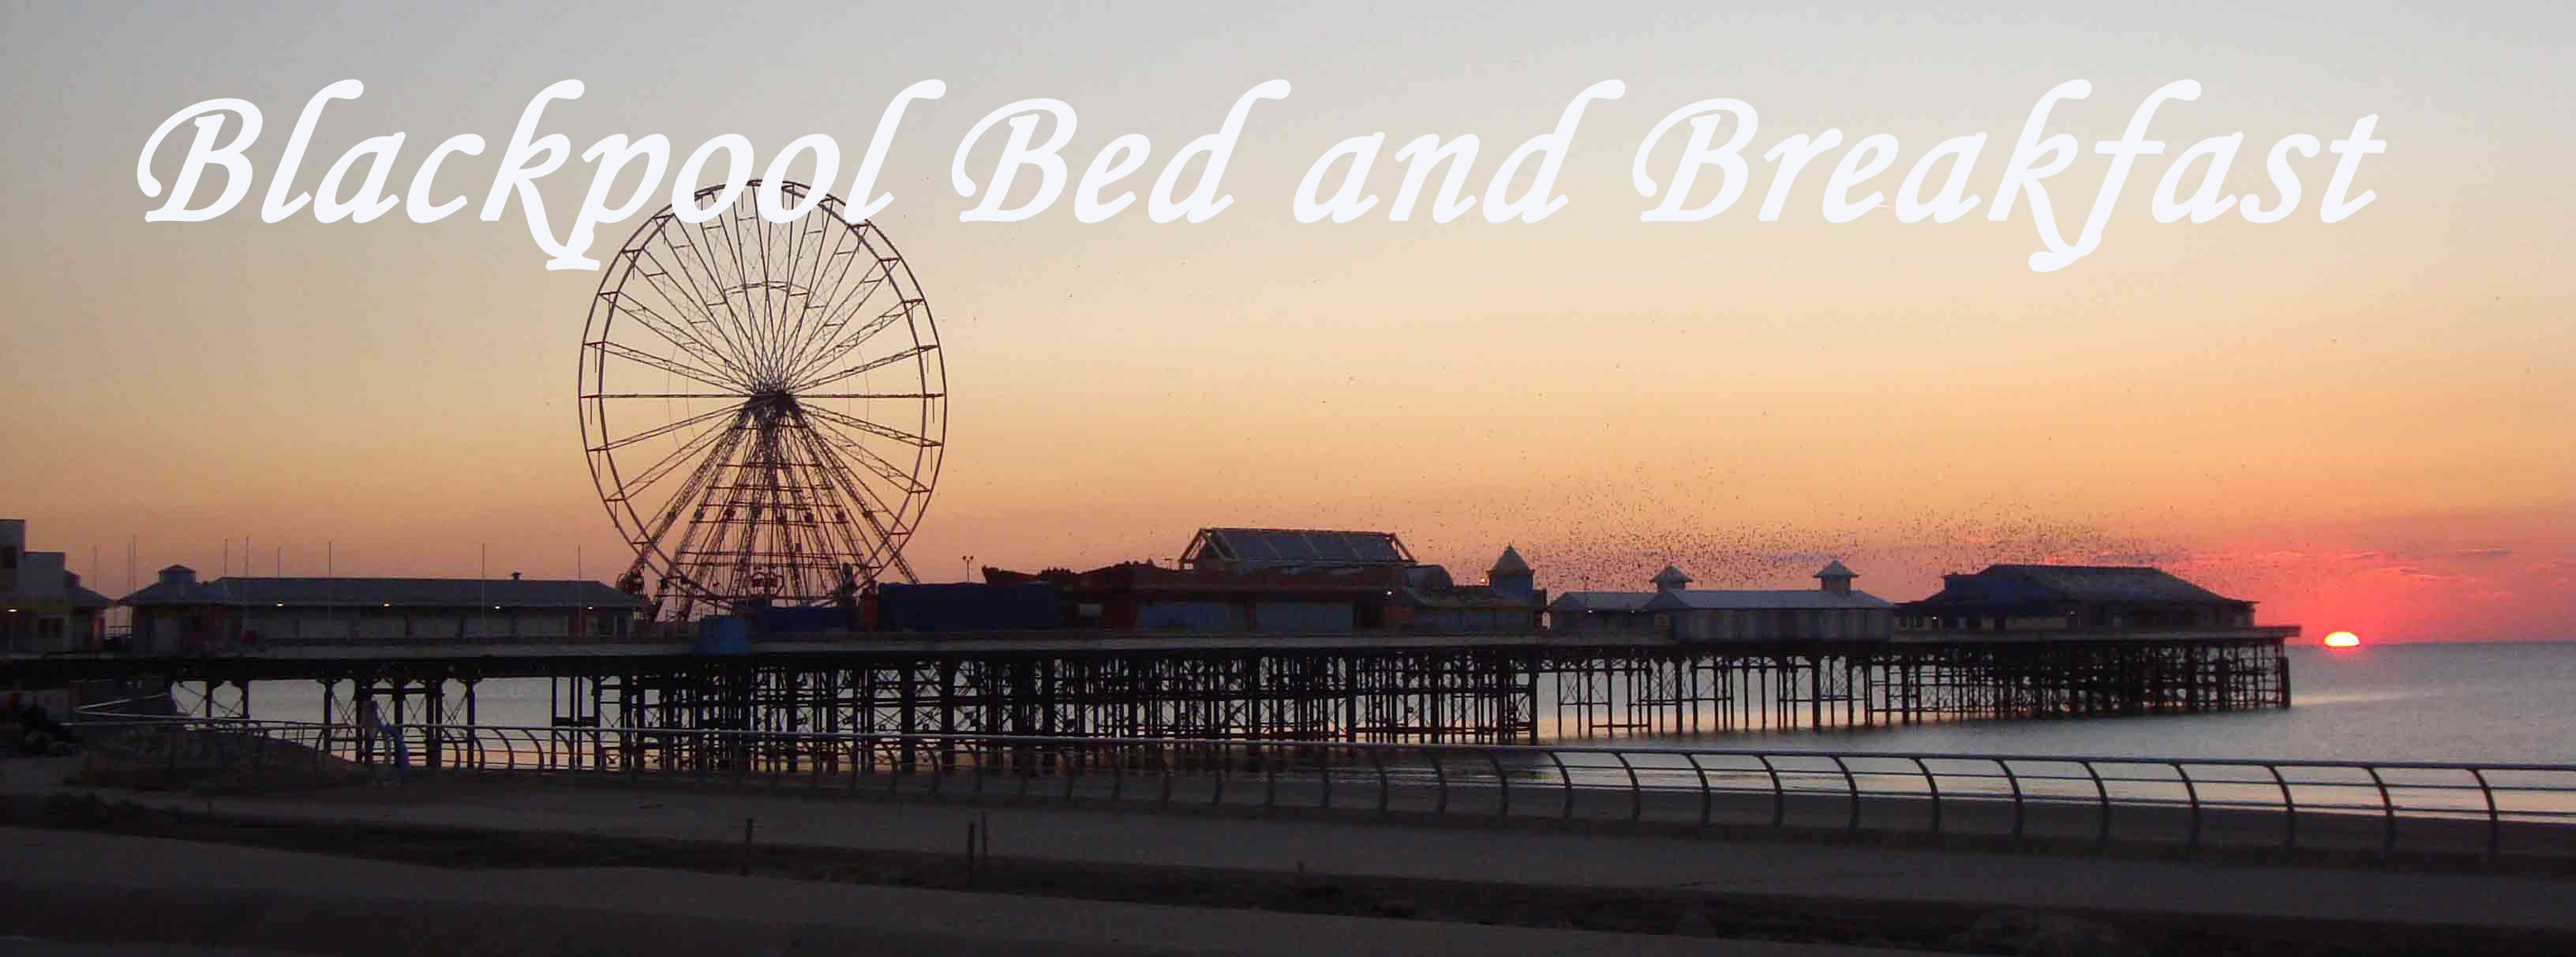 blackpool bed and breakfast